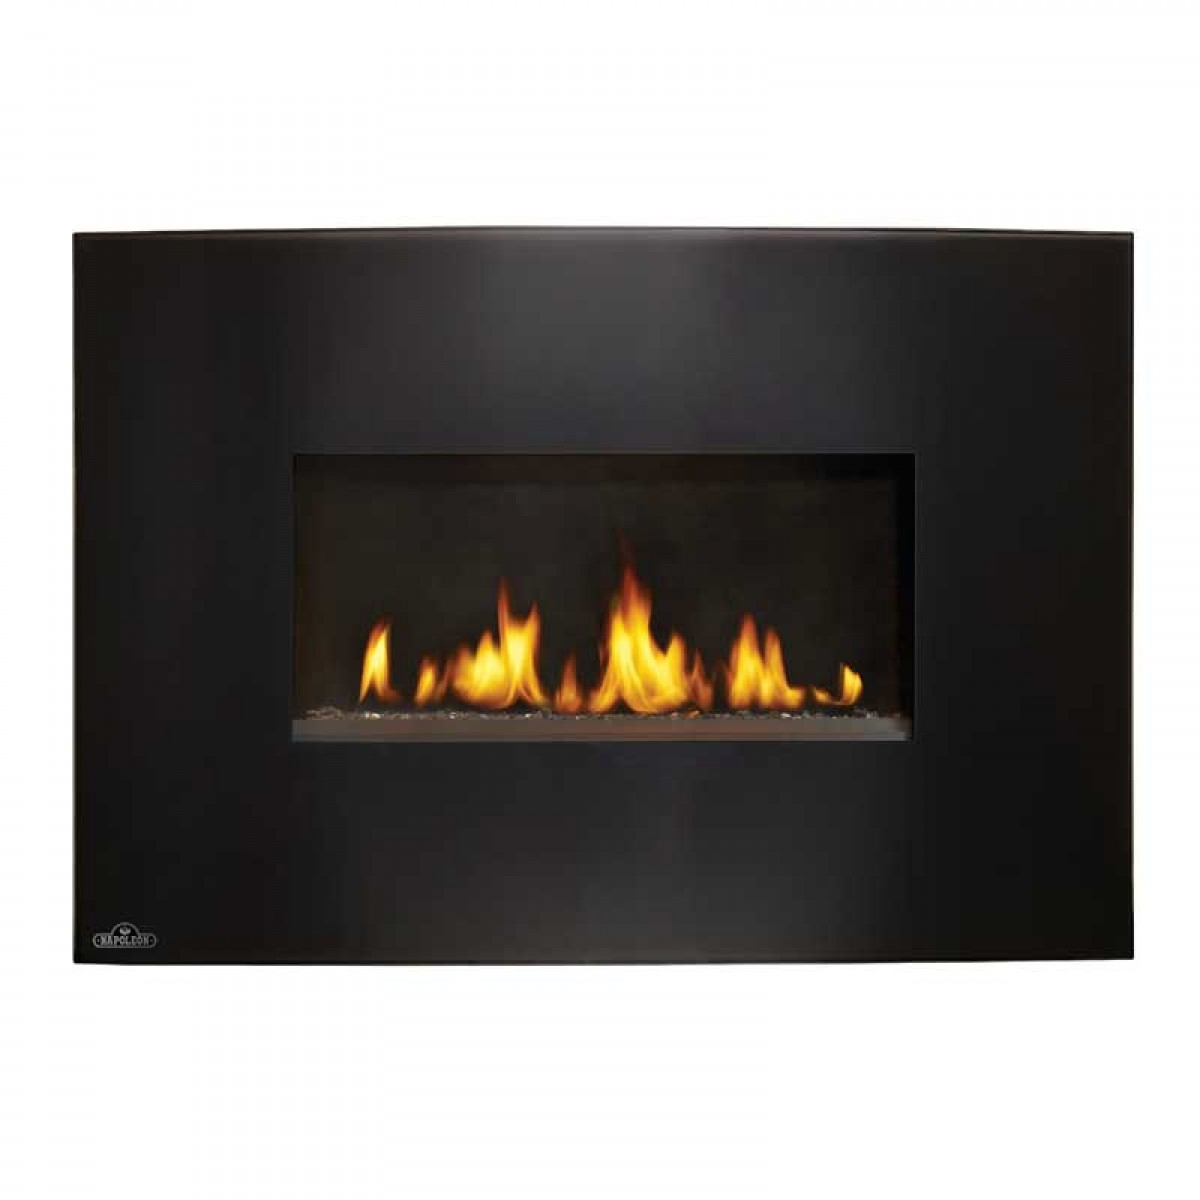 Shop with the #1 online wood stoves dealer & save big. % Low Price Guarantee + Free Shipping on all wood stove products!